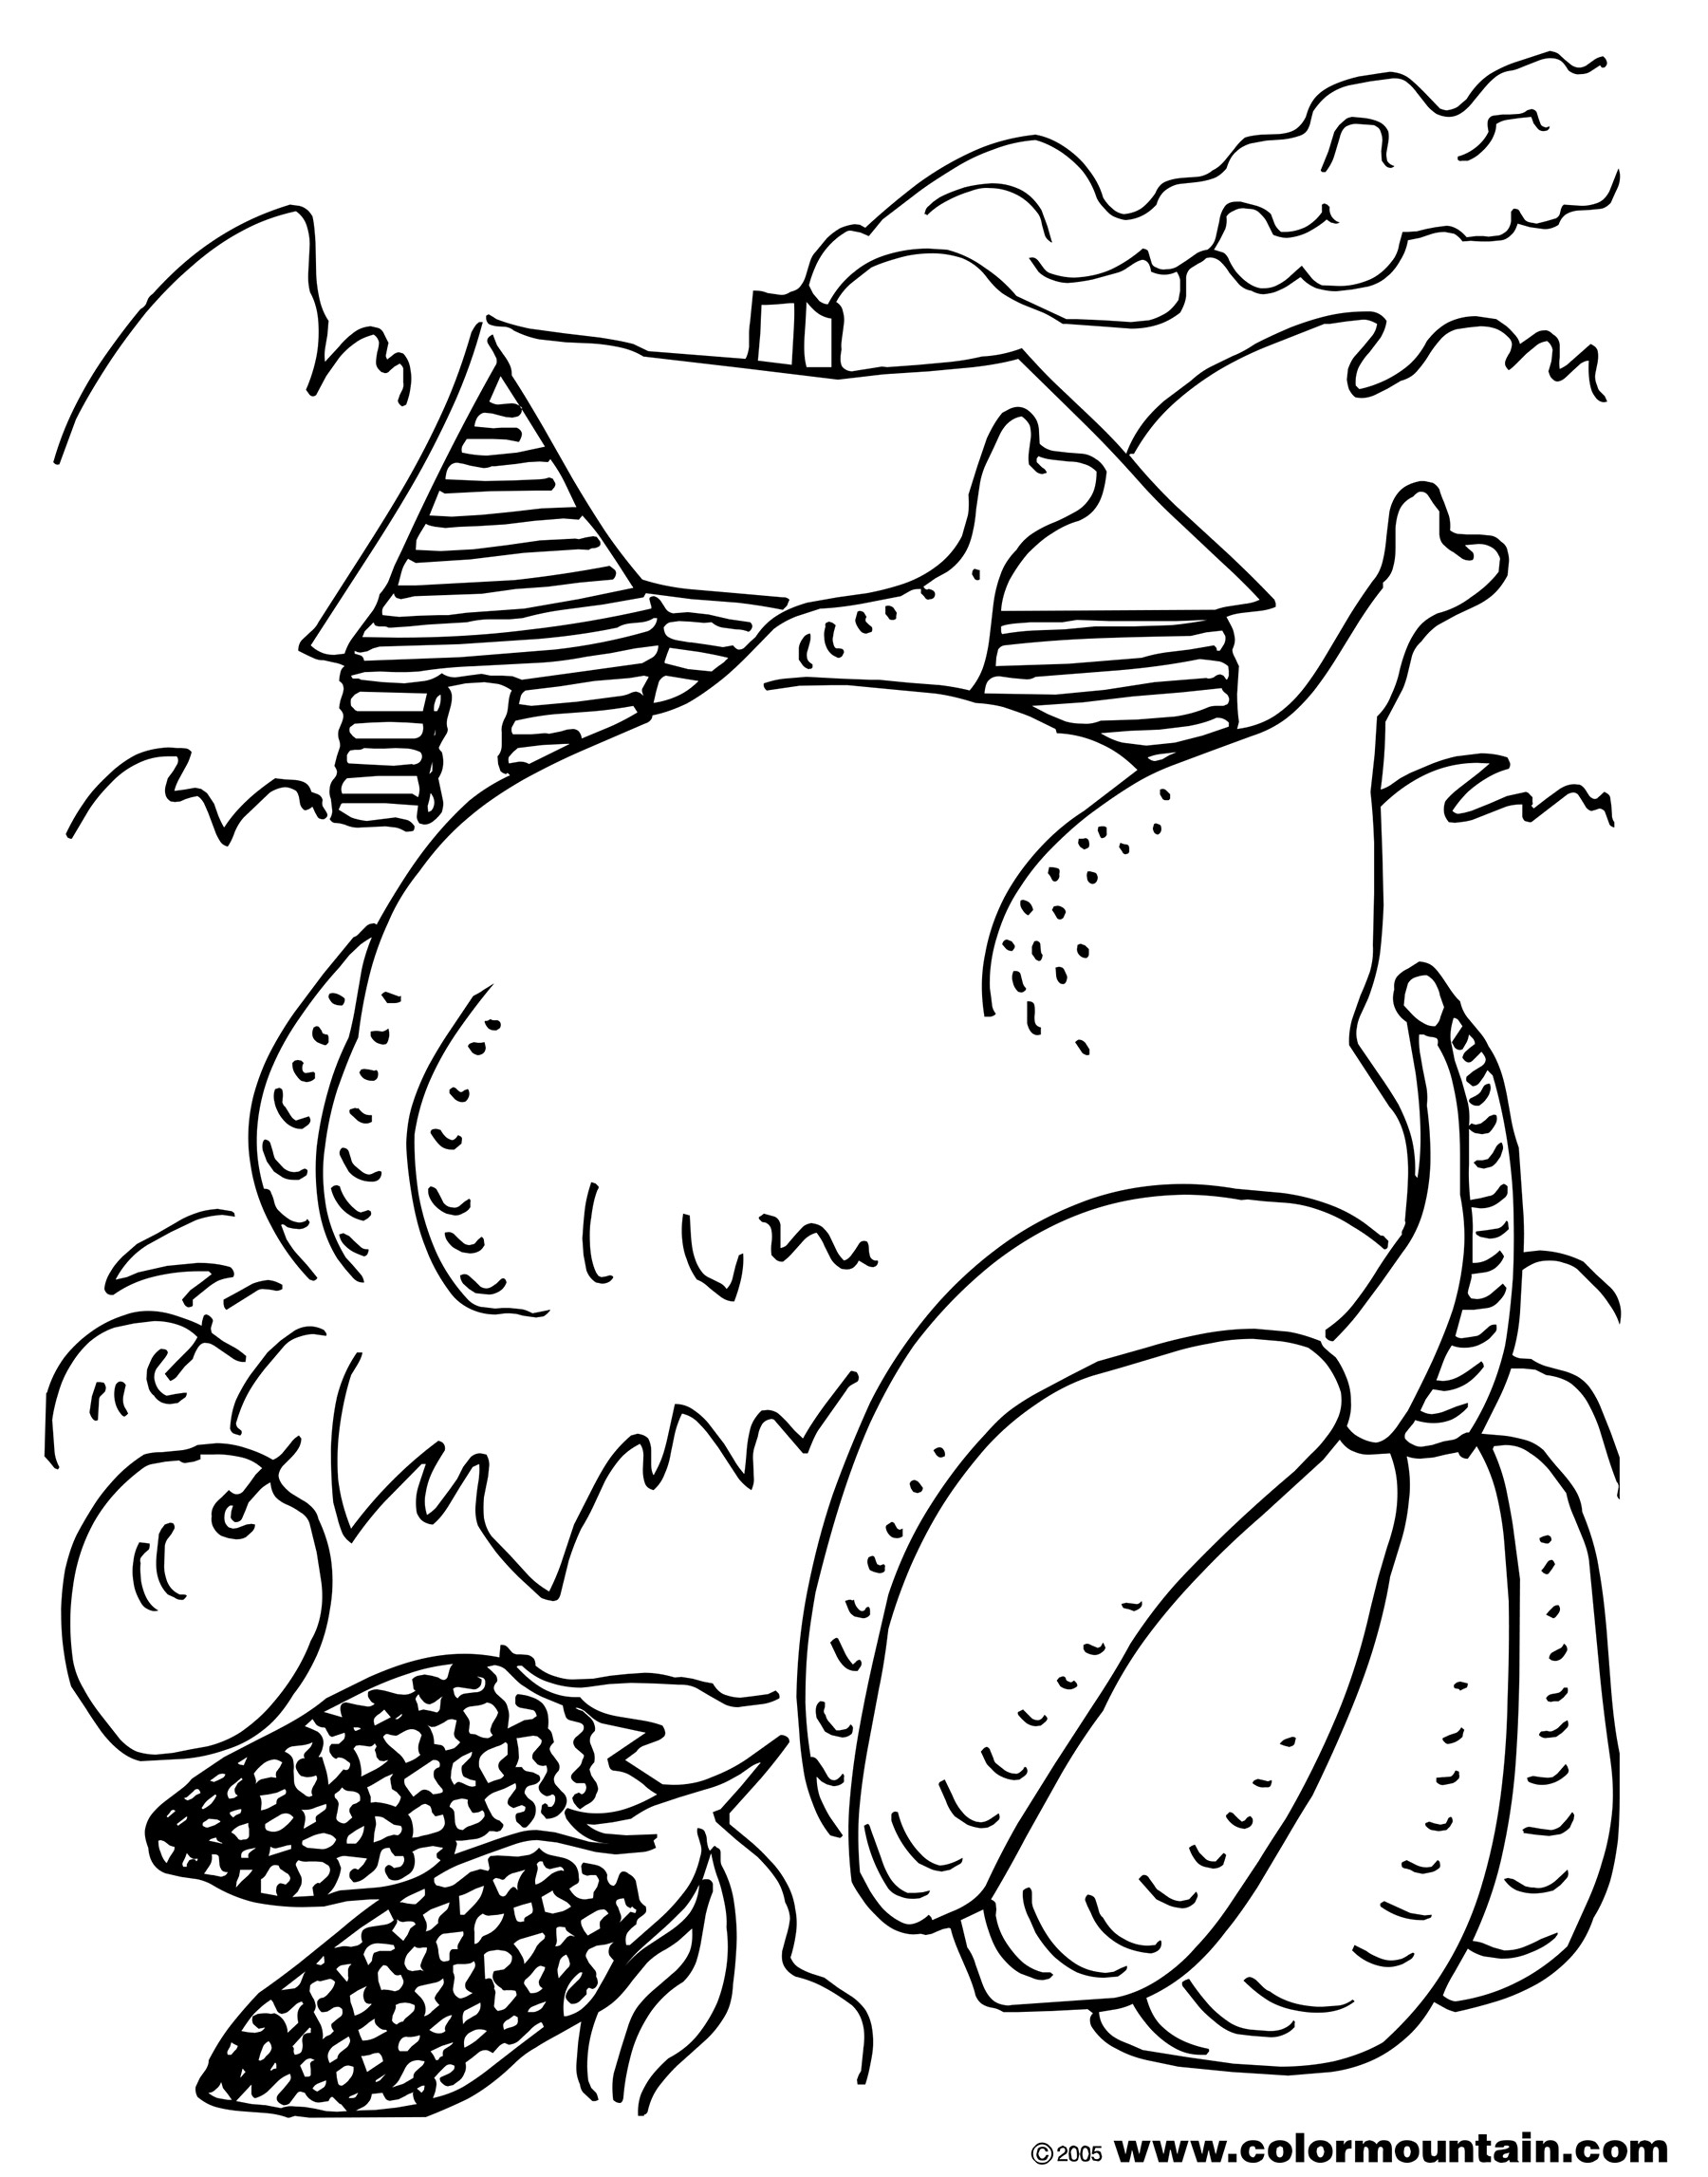 harvest coloring pages printables thanksgiving harvest coloring sheet create a printout or coloring printables harvest pages